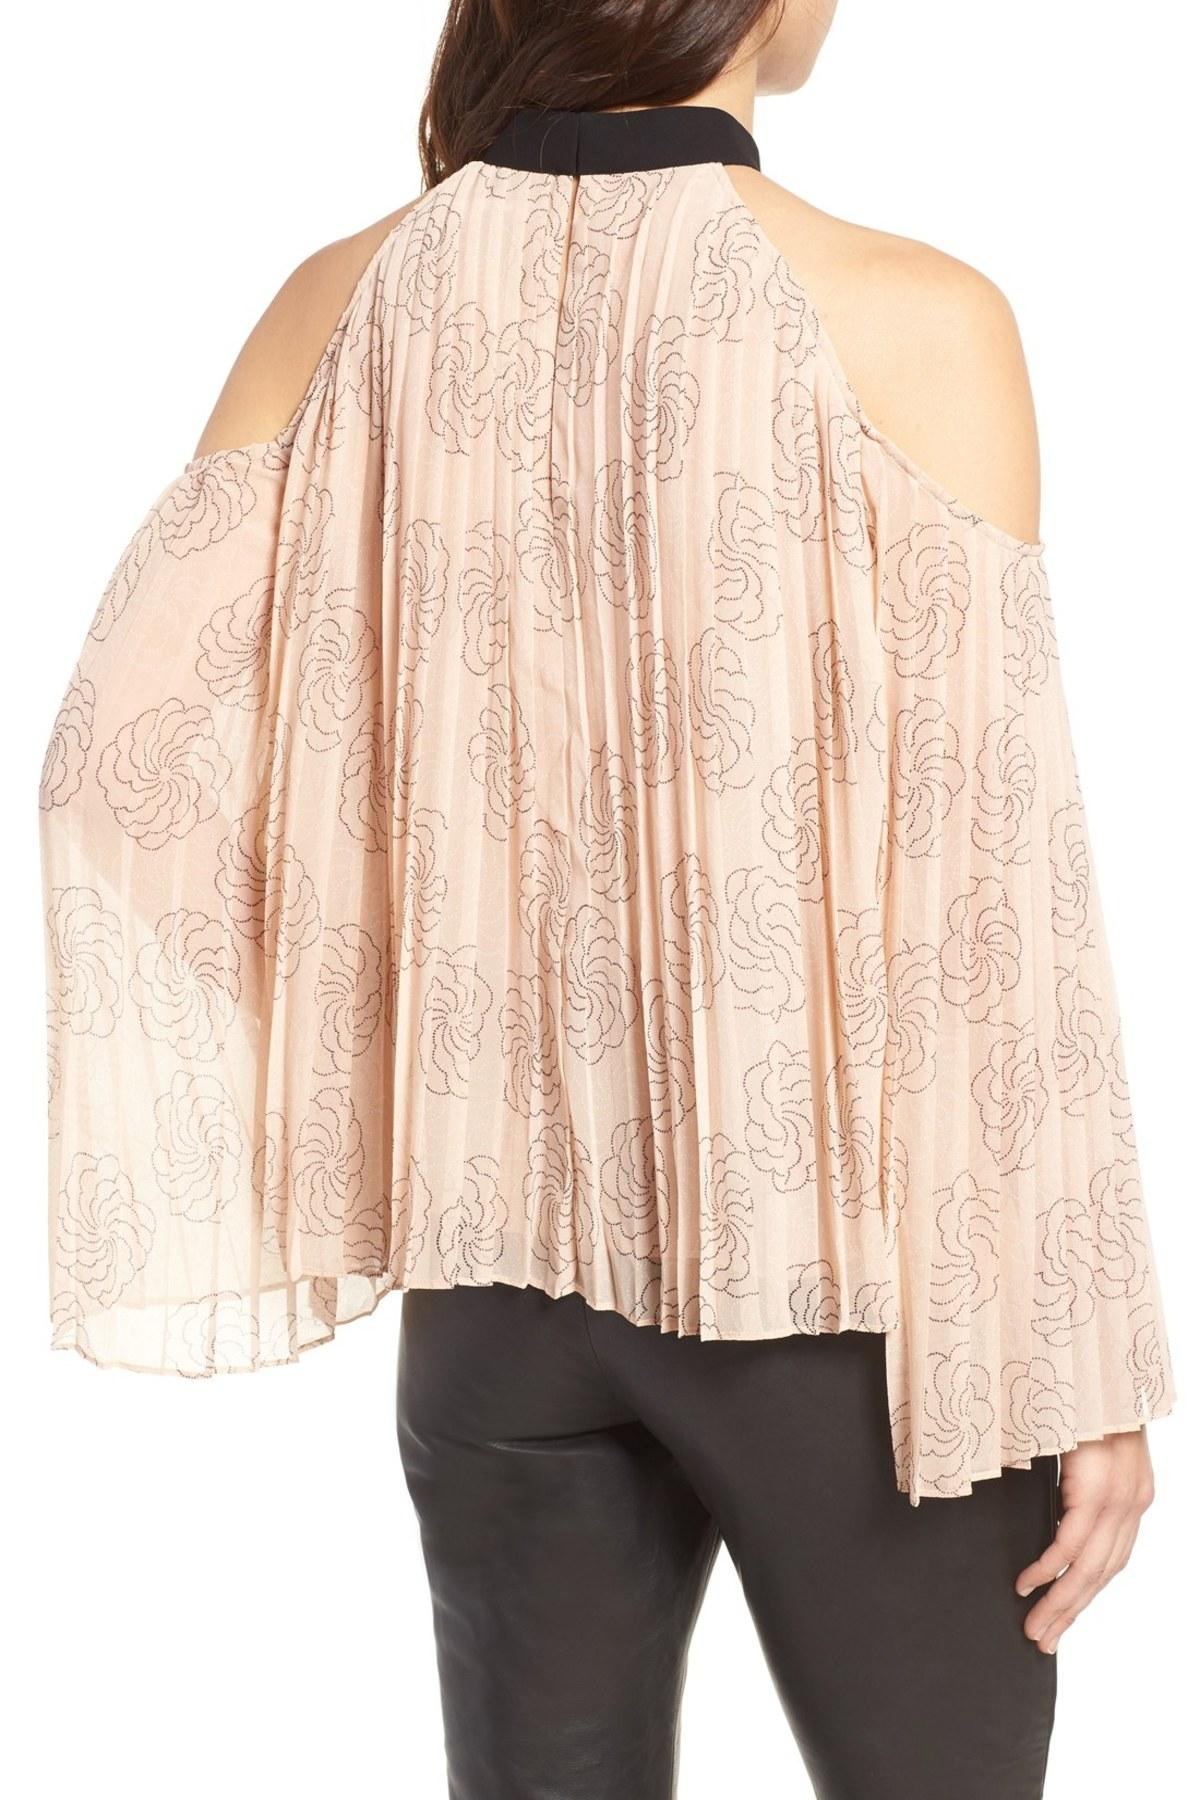 75c79559a60e26 Lyst - Chelsea28 Pleat Cold Shoulder Top in Pink